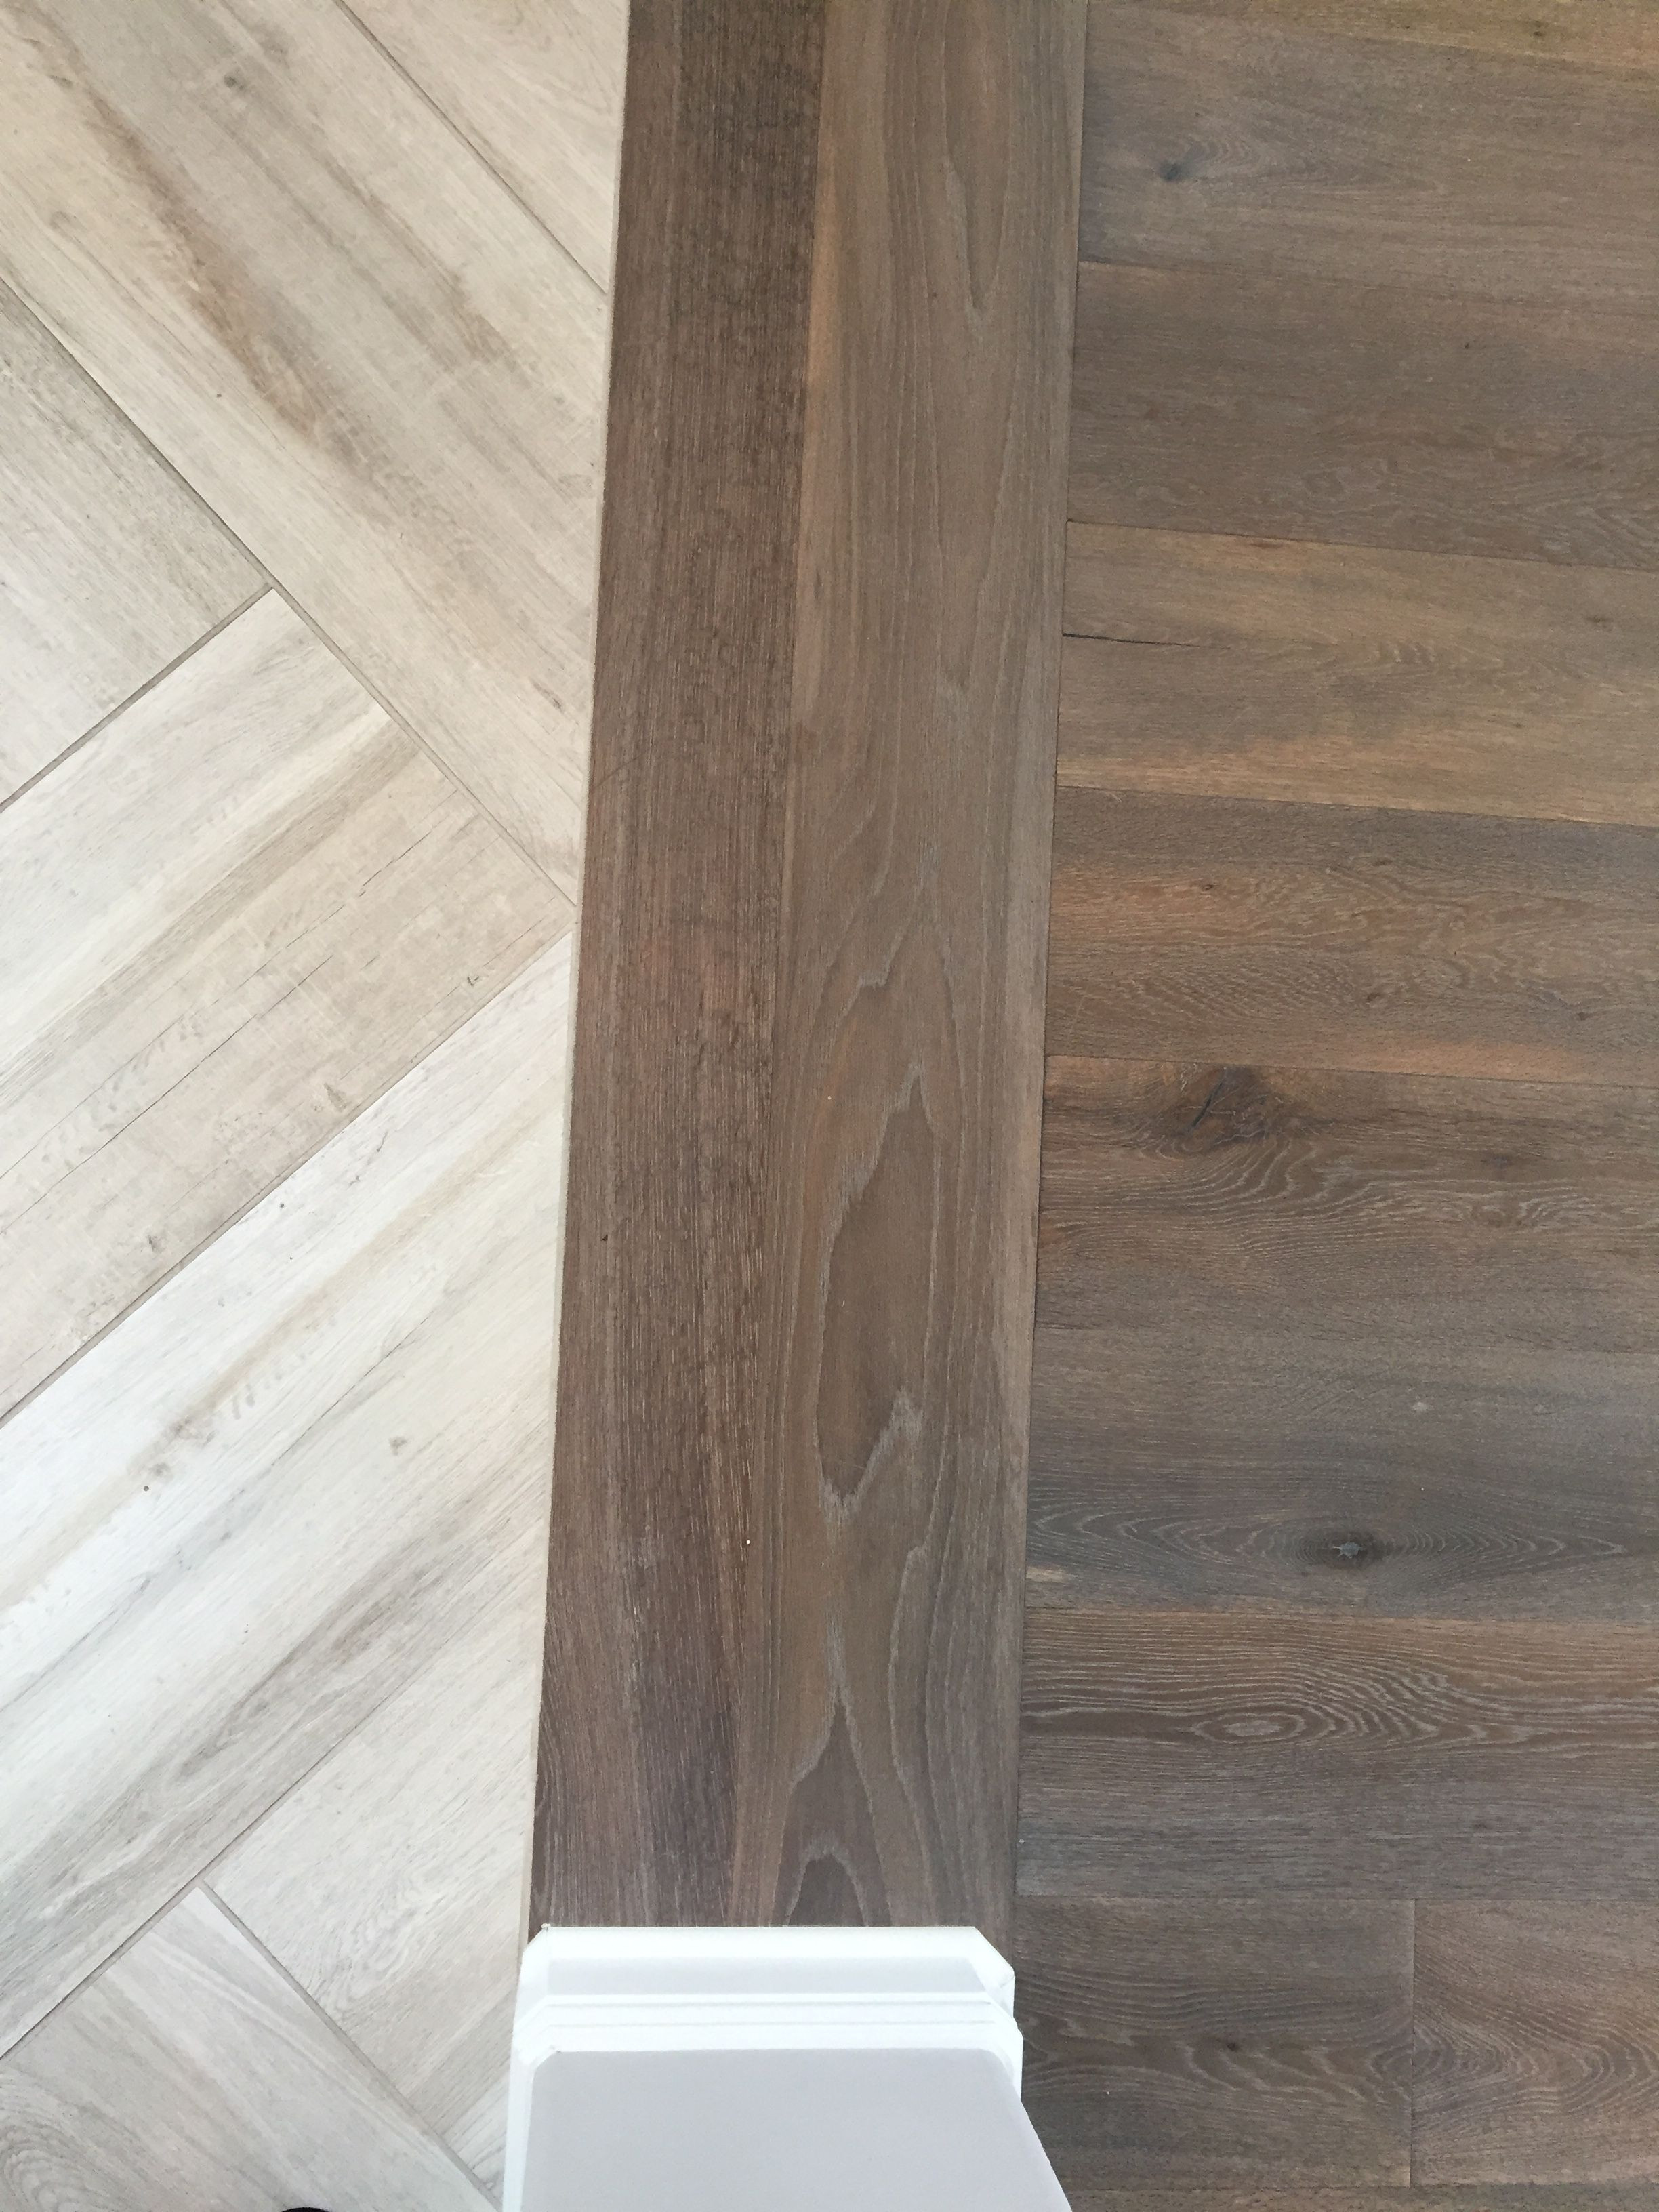 dark hardwood floors for sale of ceramic tile wood floor new decorating an open floor plan living intended for ceramic tile wood floor floor transition laminate to herringbone tile pattern